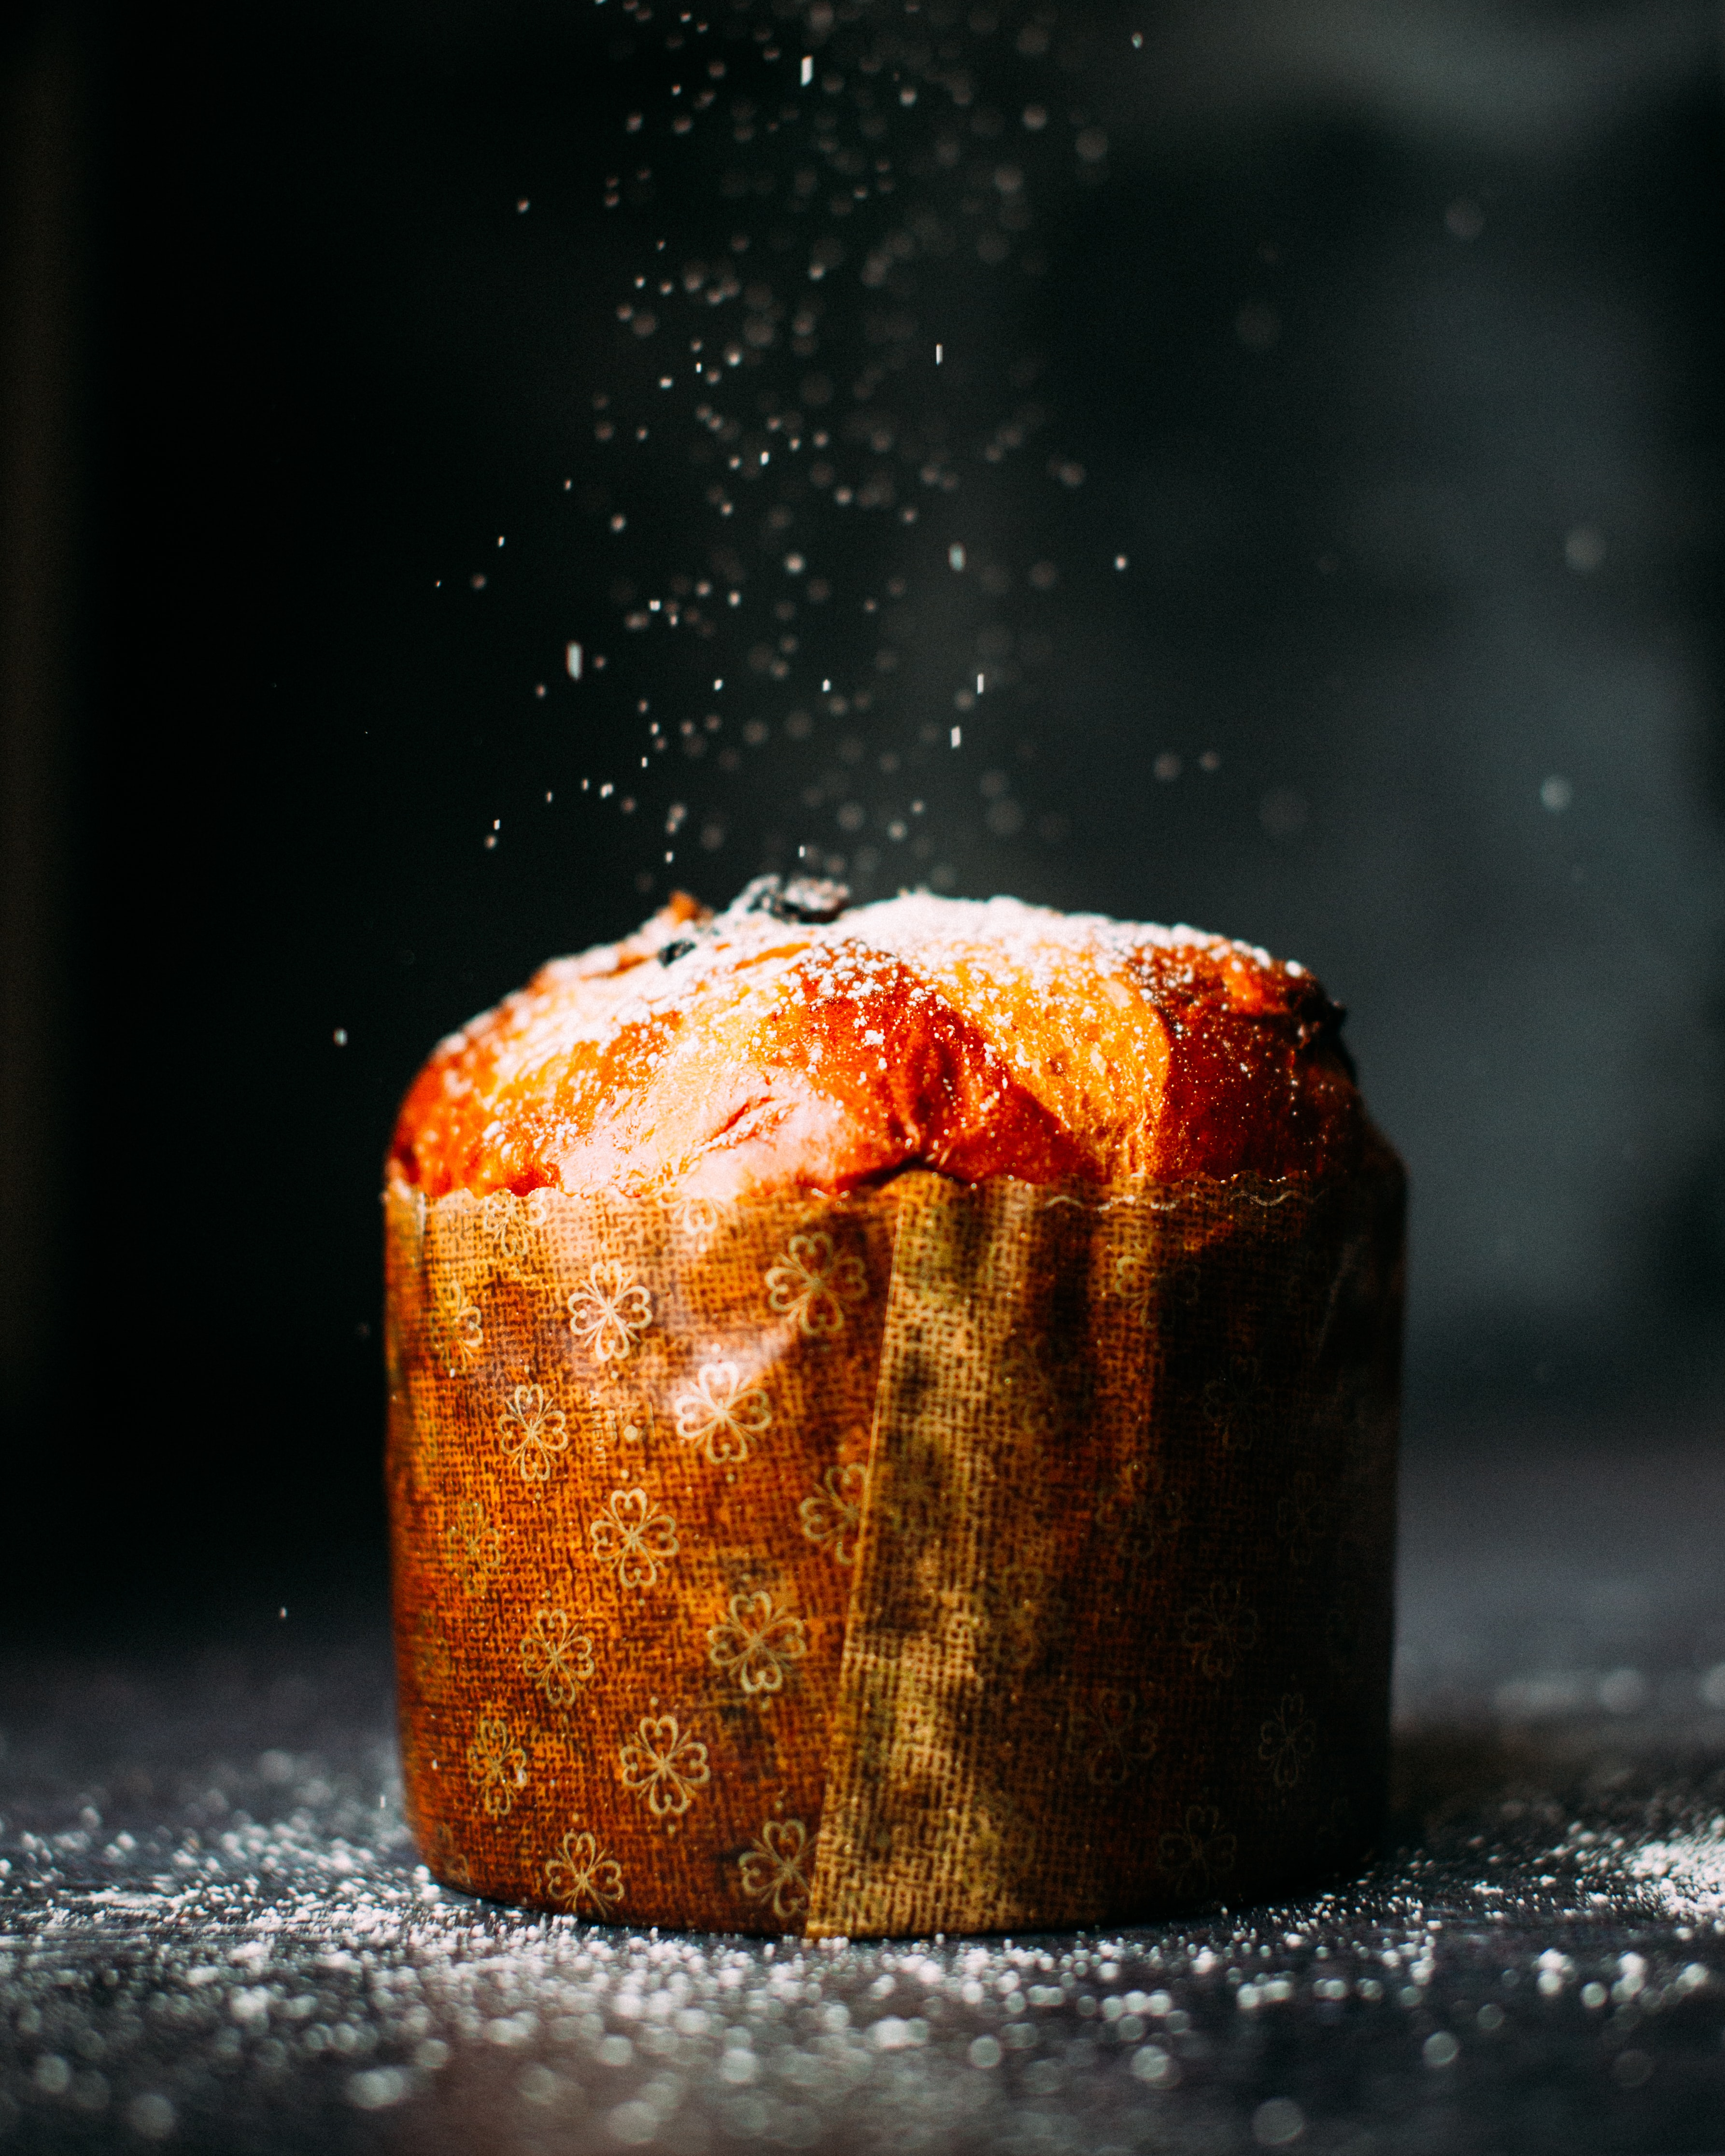 A muffin wrapped in paper and sprinkled with powdered sugar